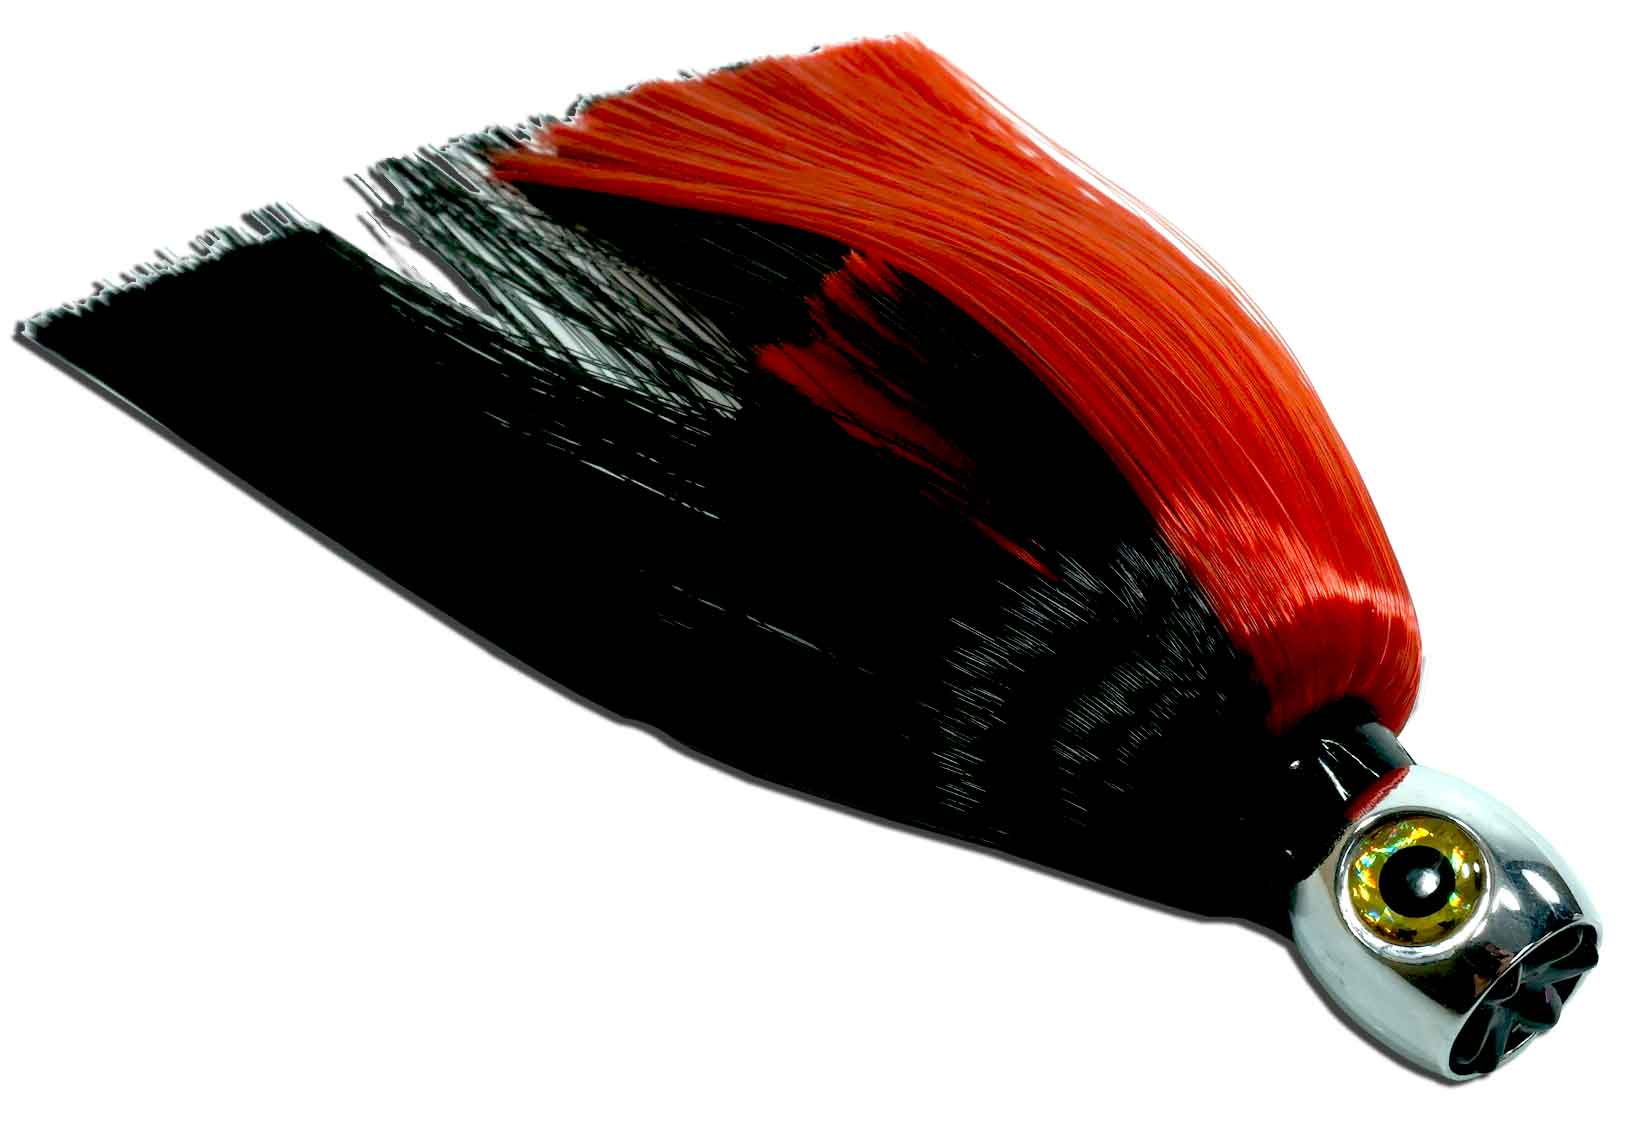 JET HEAD TROLLING LURE 7.5 INCH RED/BLACK